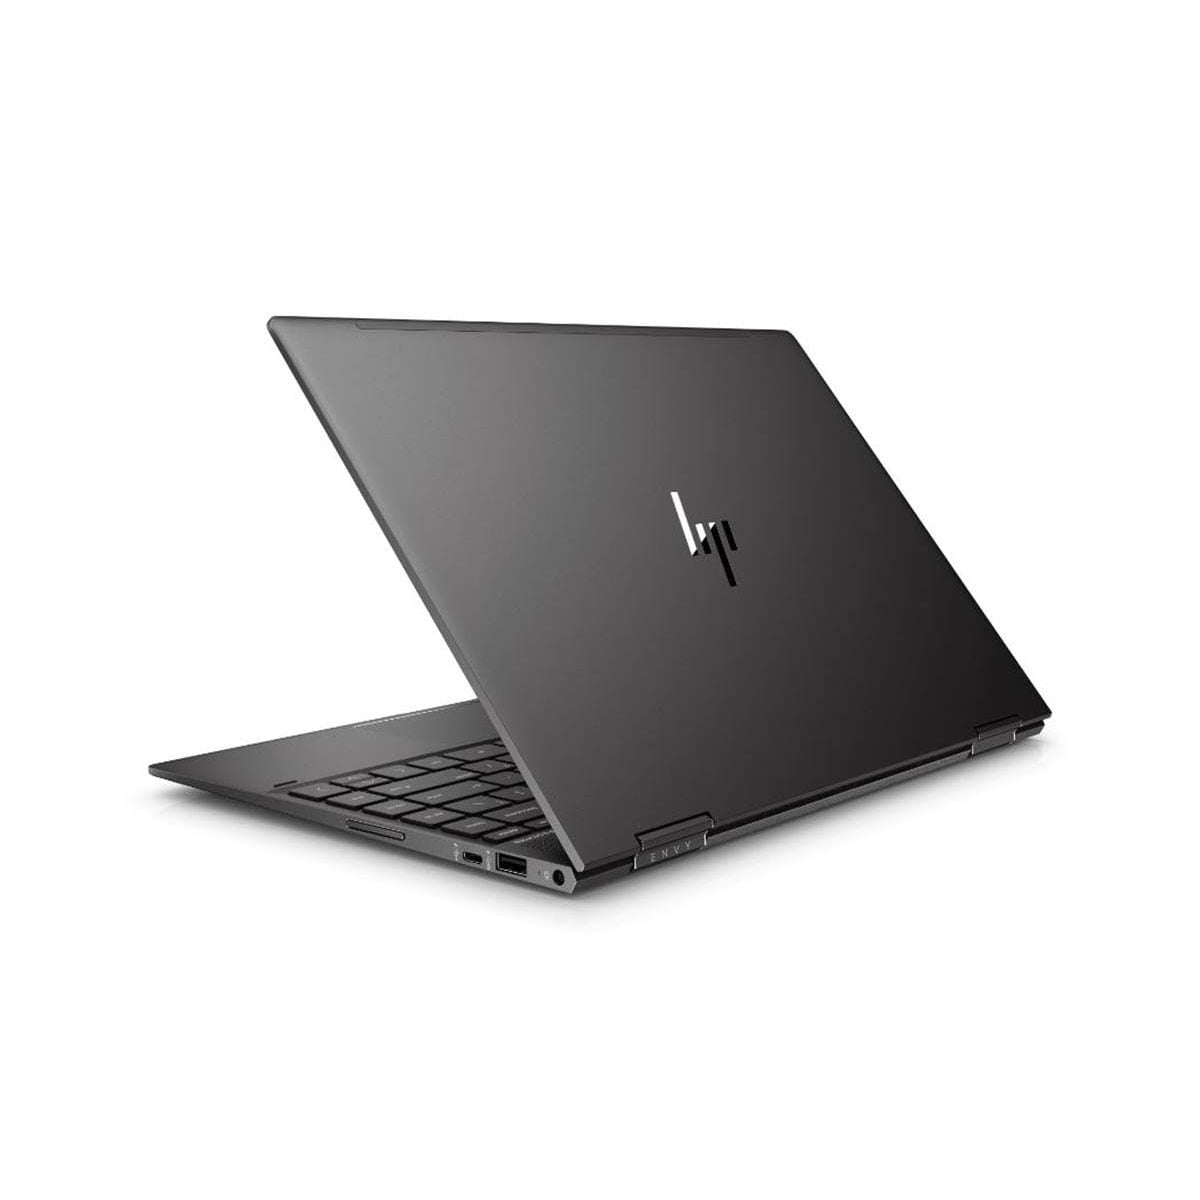 HP Envy 15 BP165cl X360 Touch 2019 Price in Pakistan